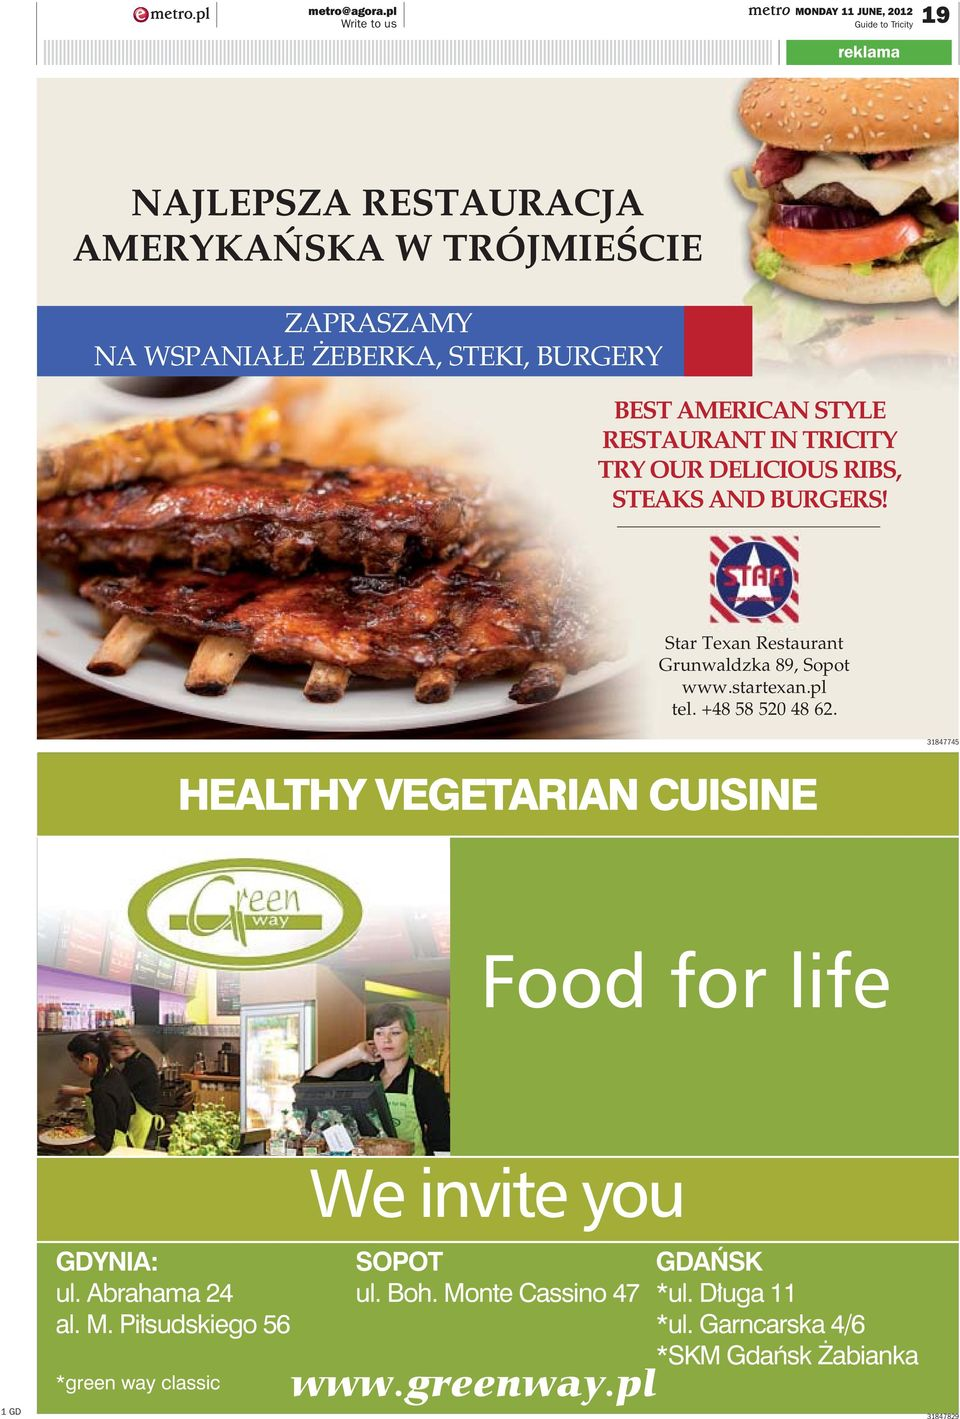 IN TRICITY TRY OUR DELICIOUS RIBS, STEAKS AND BURGERS! Star Texan Restaurant Grunwaldzka 89, Sopot www.startexan.pl tel. +48 58 520 48 62.